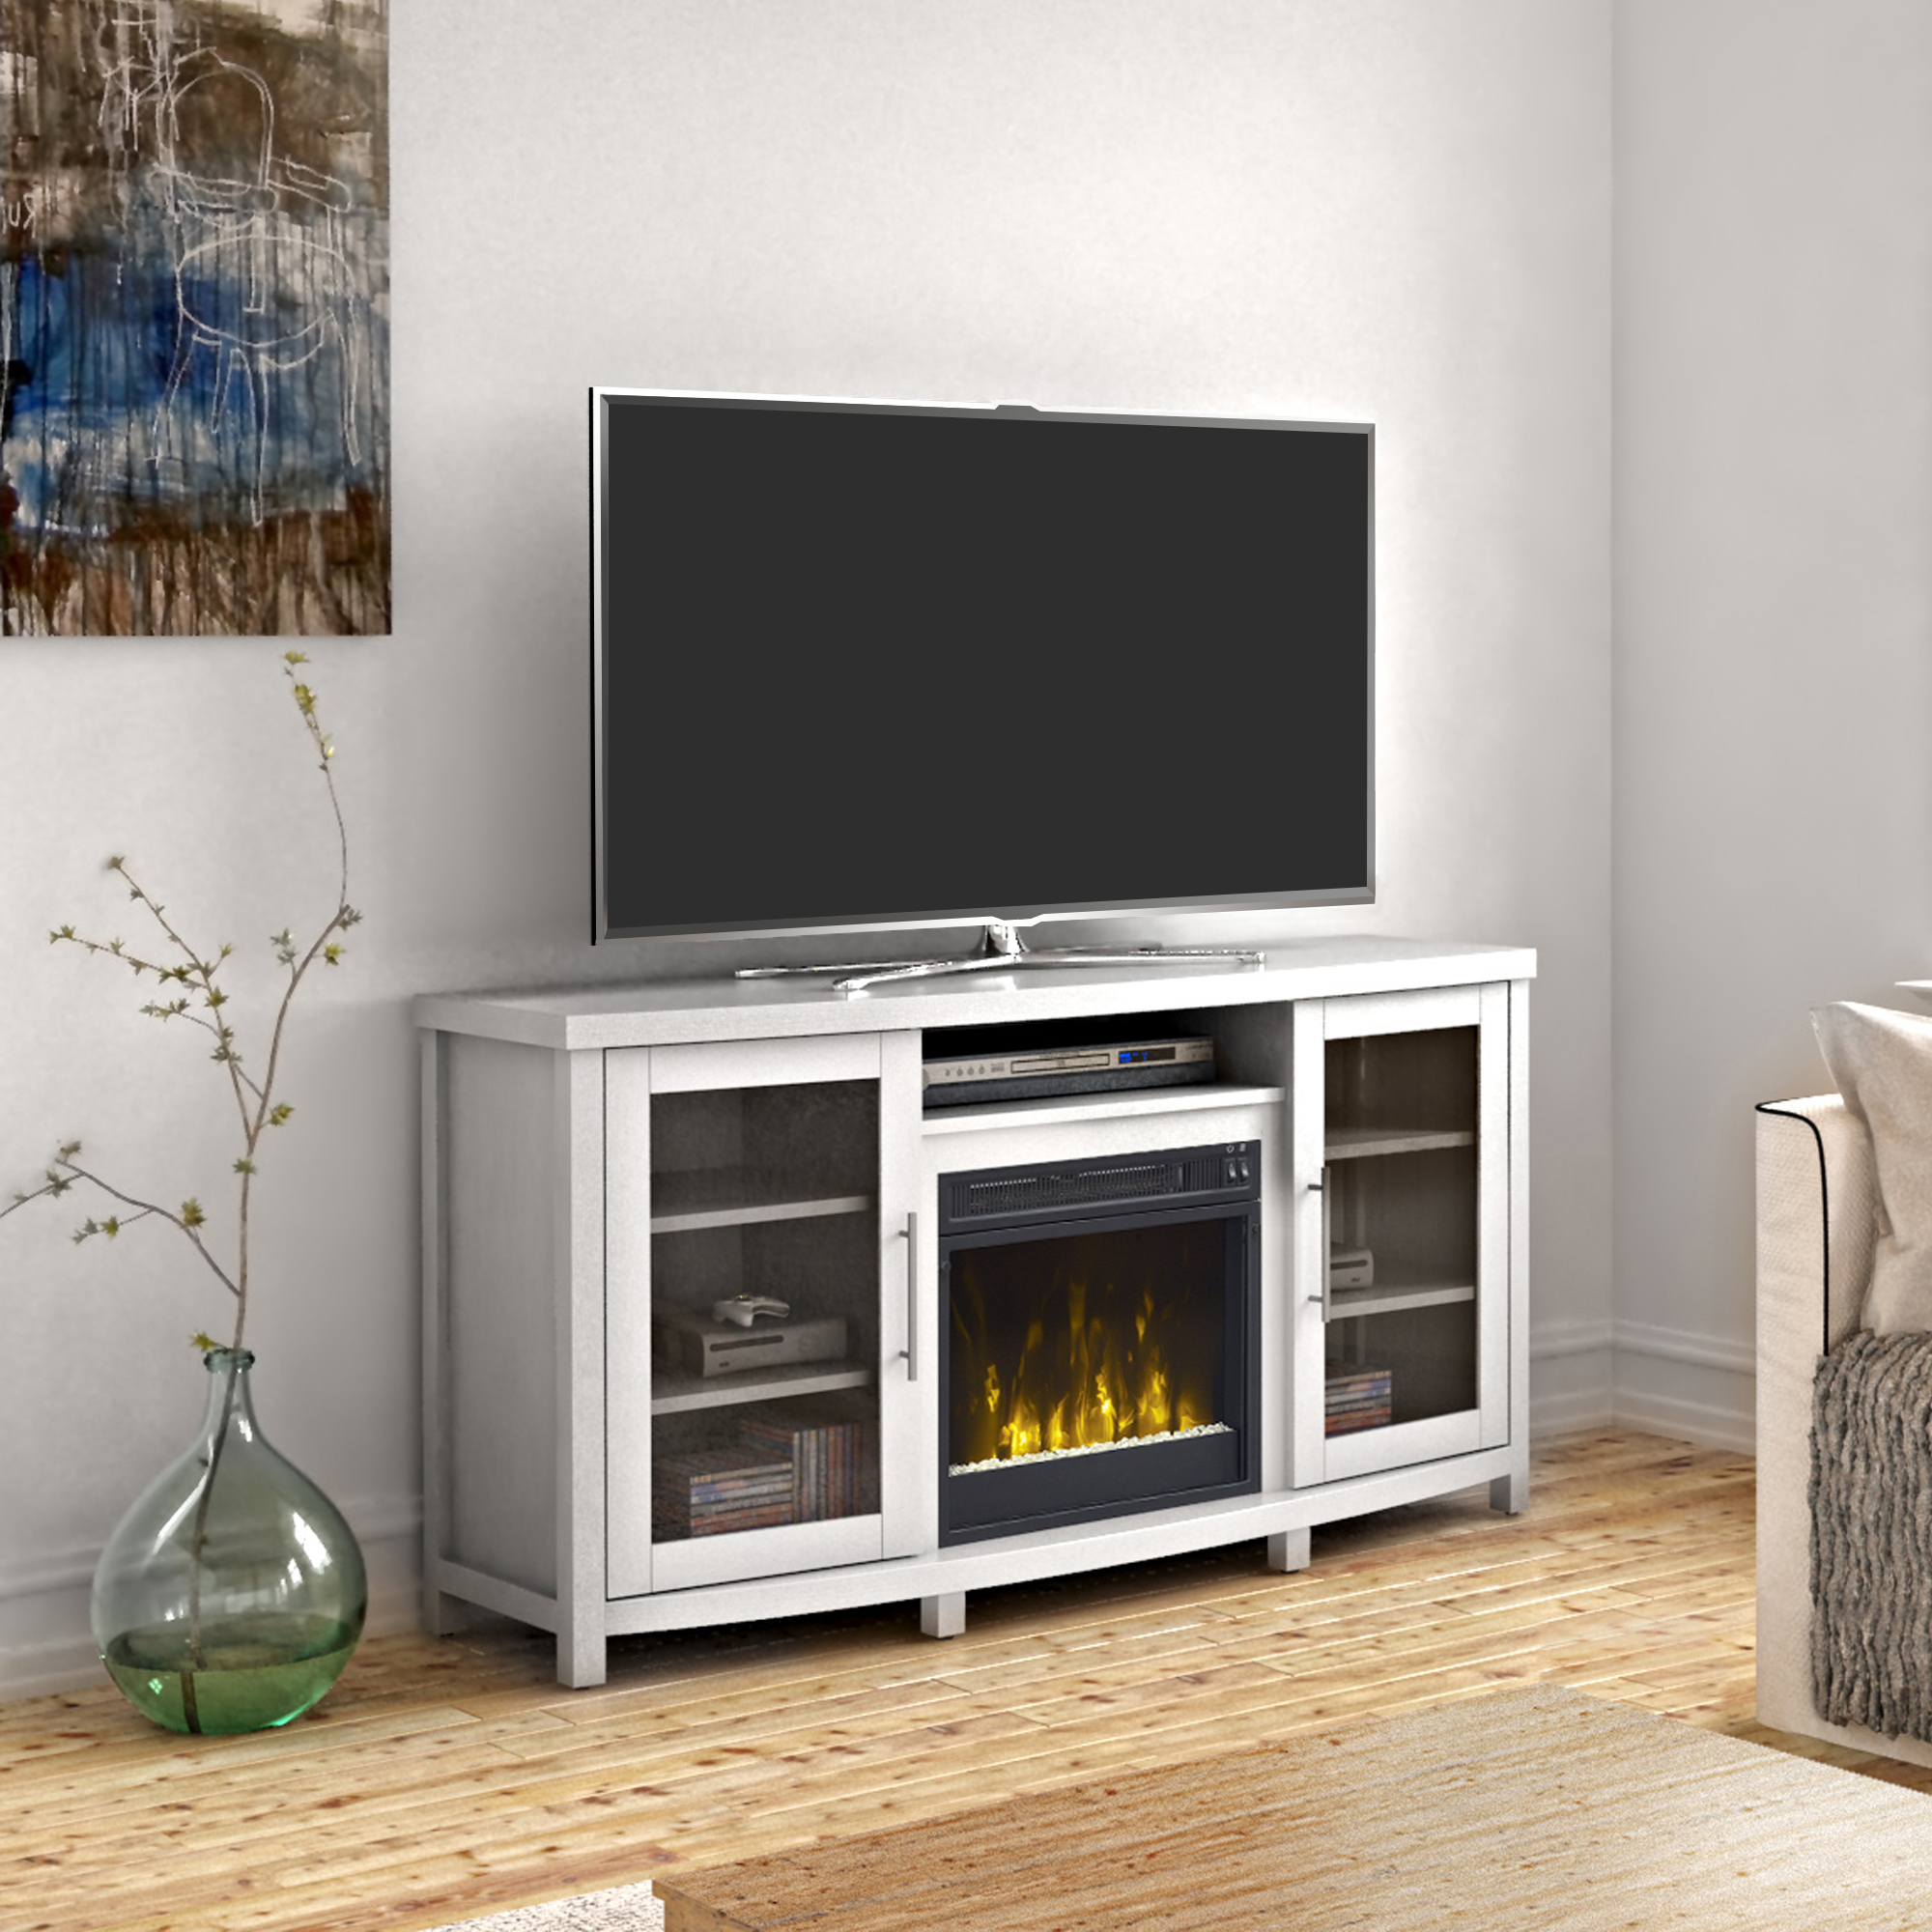 """Sea Meadow White Tv Stand For Tvs Up To 60"""" With Electric With Regard To Hal Tv Stands For Tvs Up To 60"""" (View 8 of 20)"""